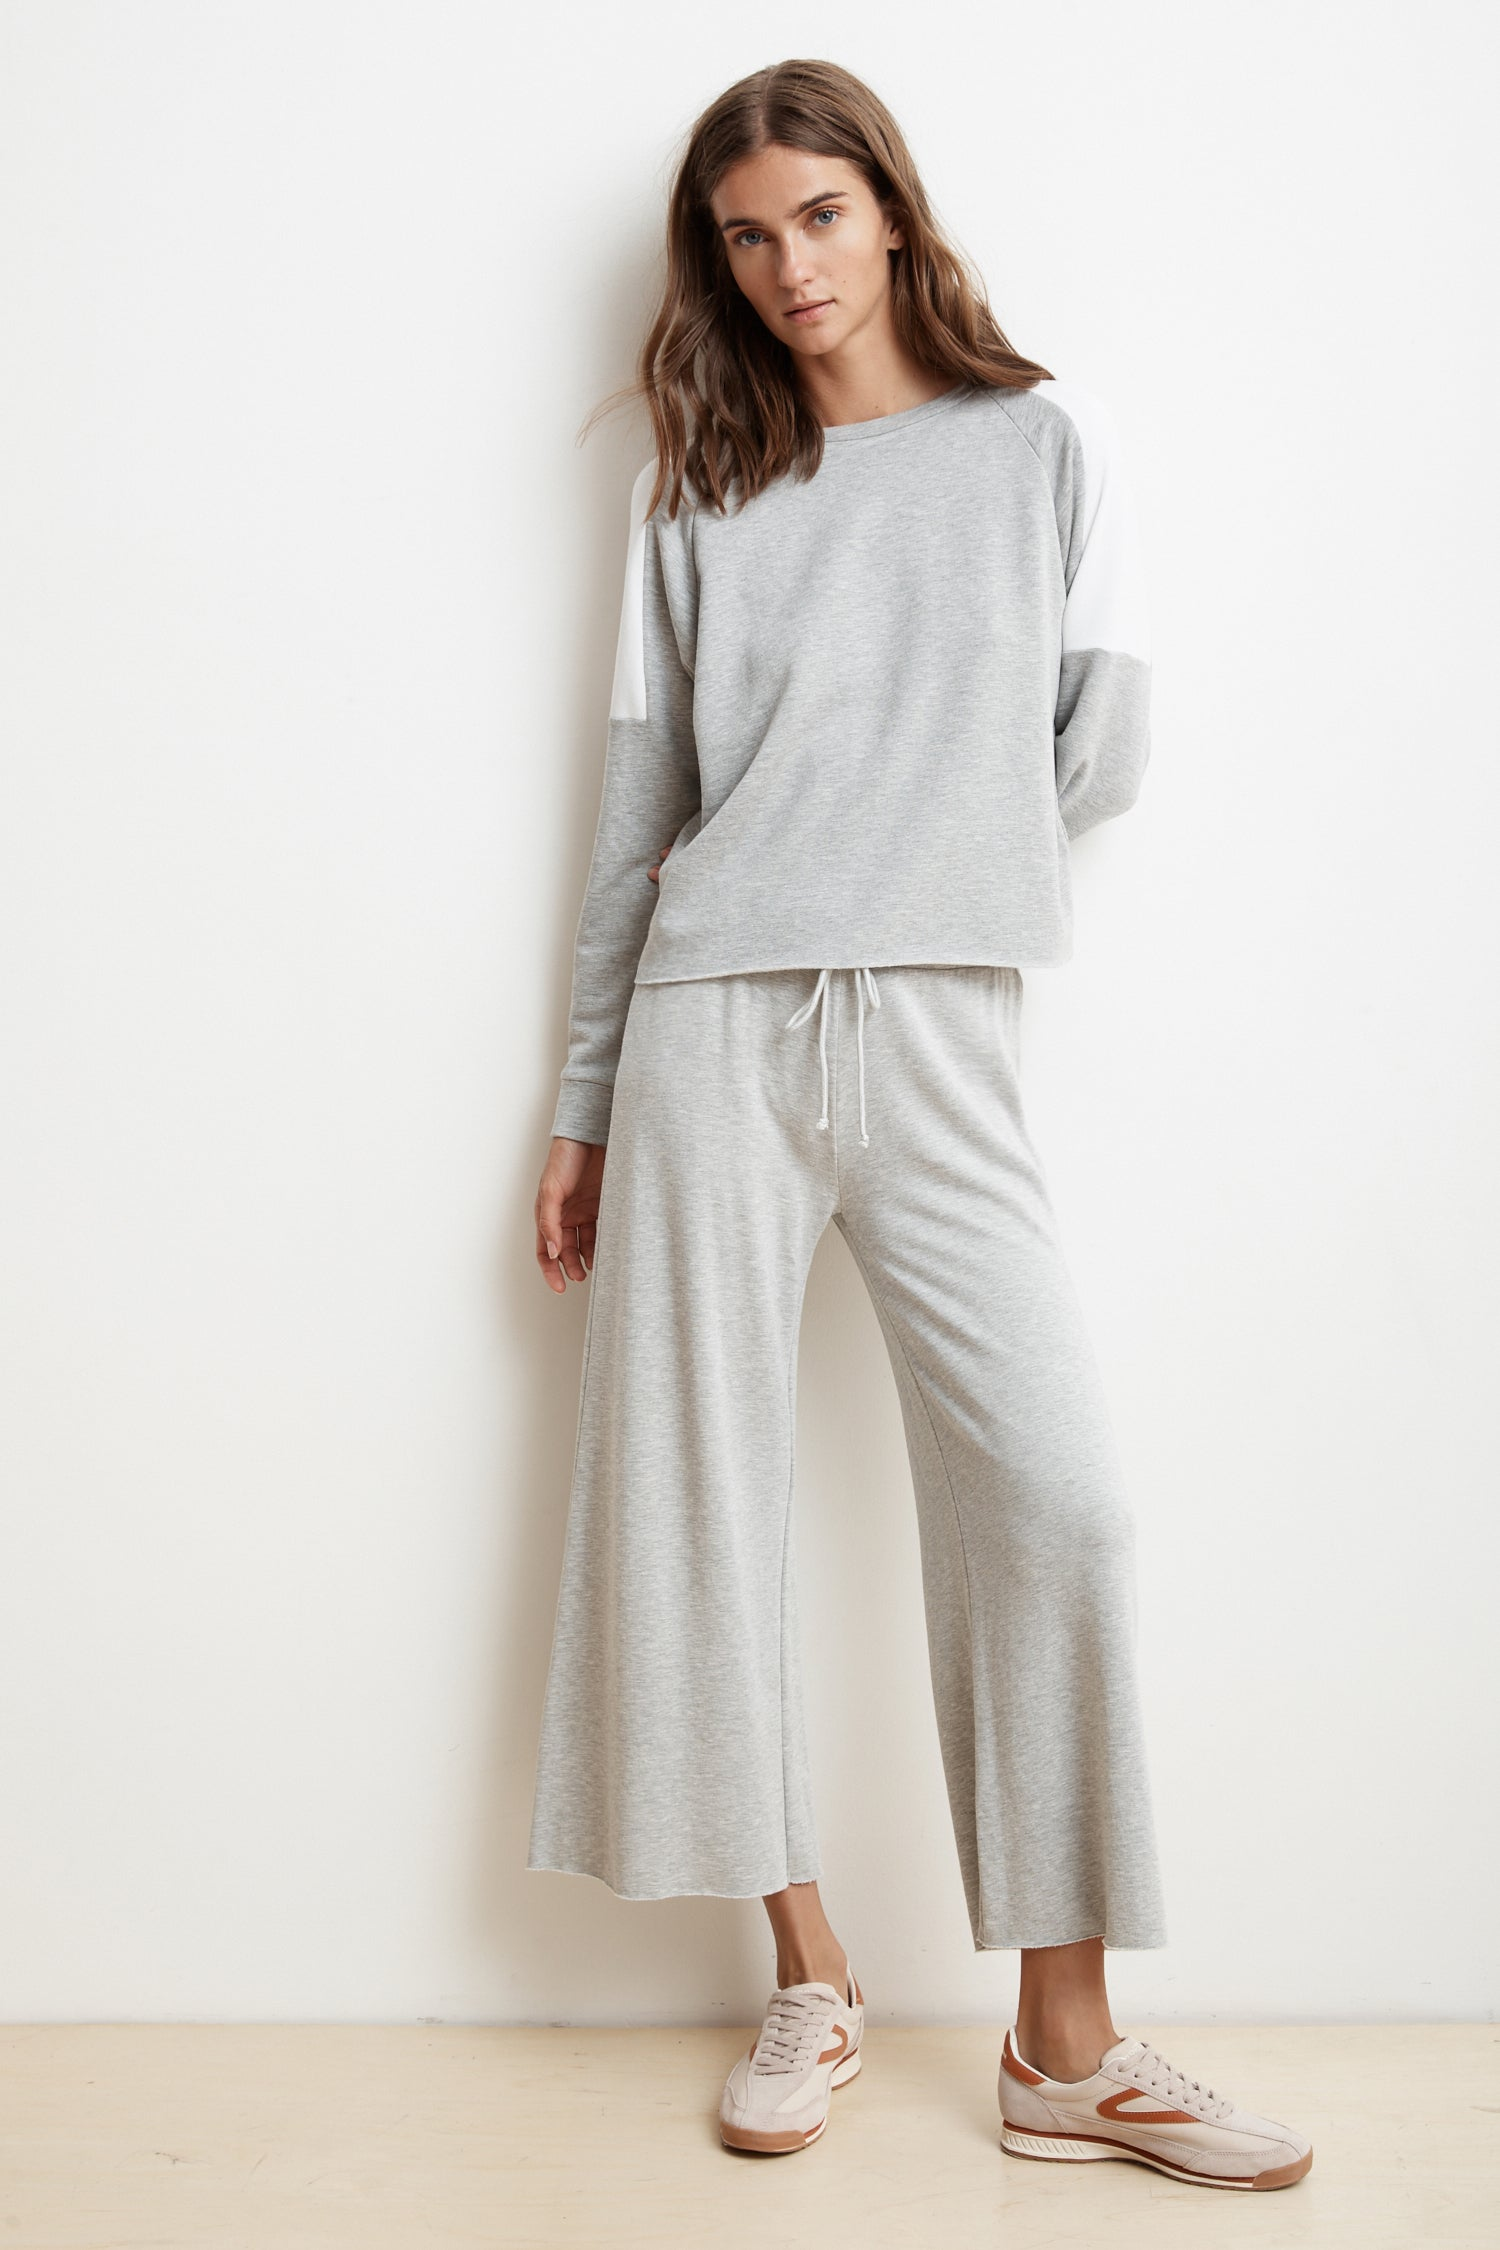 ADALIA WIDE LEG LUXE FLEECE PANT IN HEATHER GREY